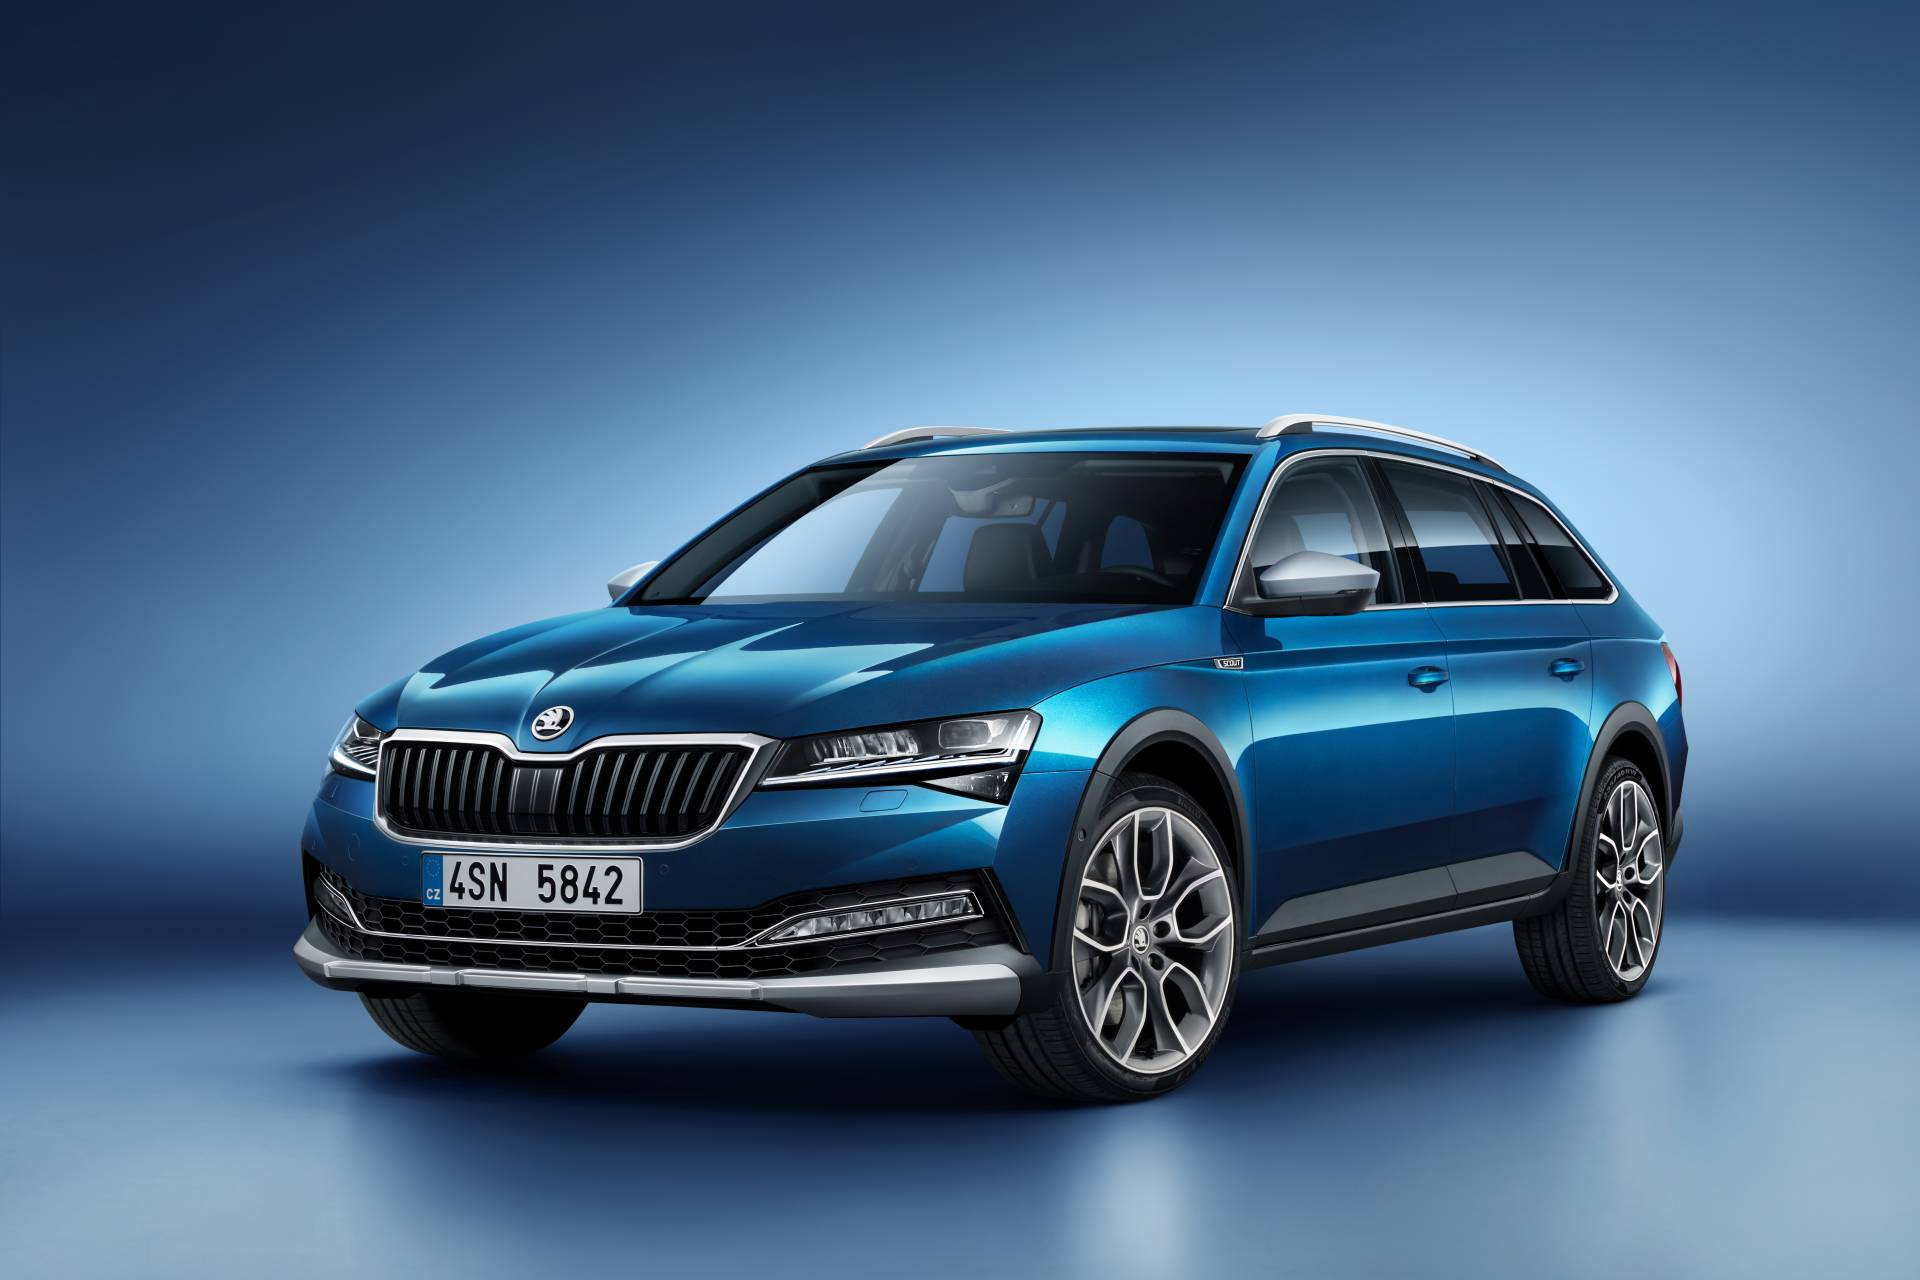 Skoda Superb revealed as a plug-in hybrid